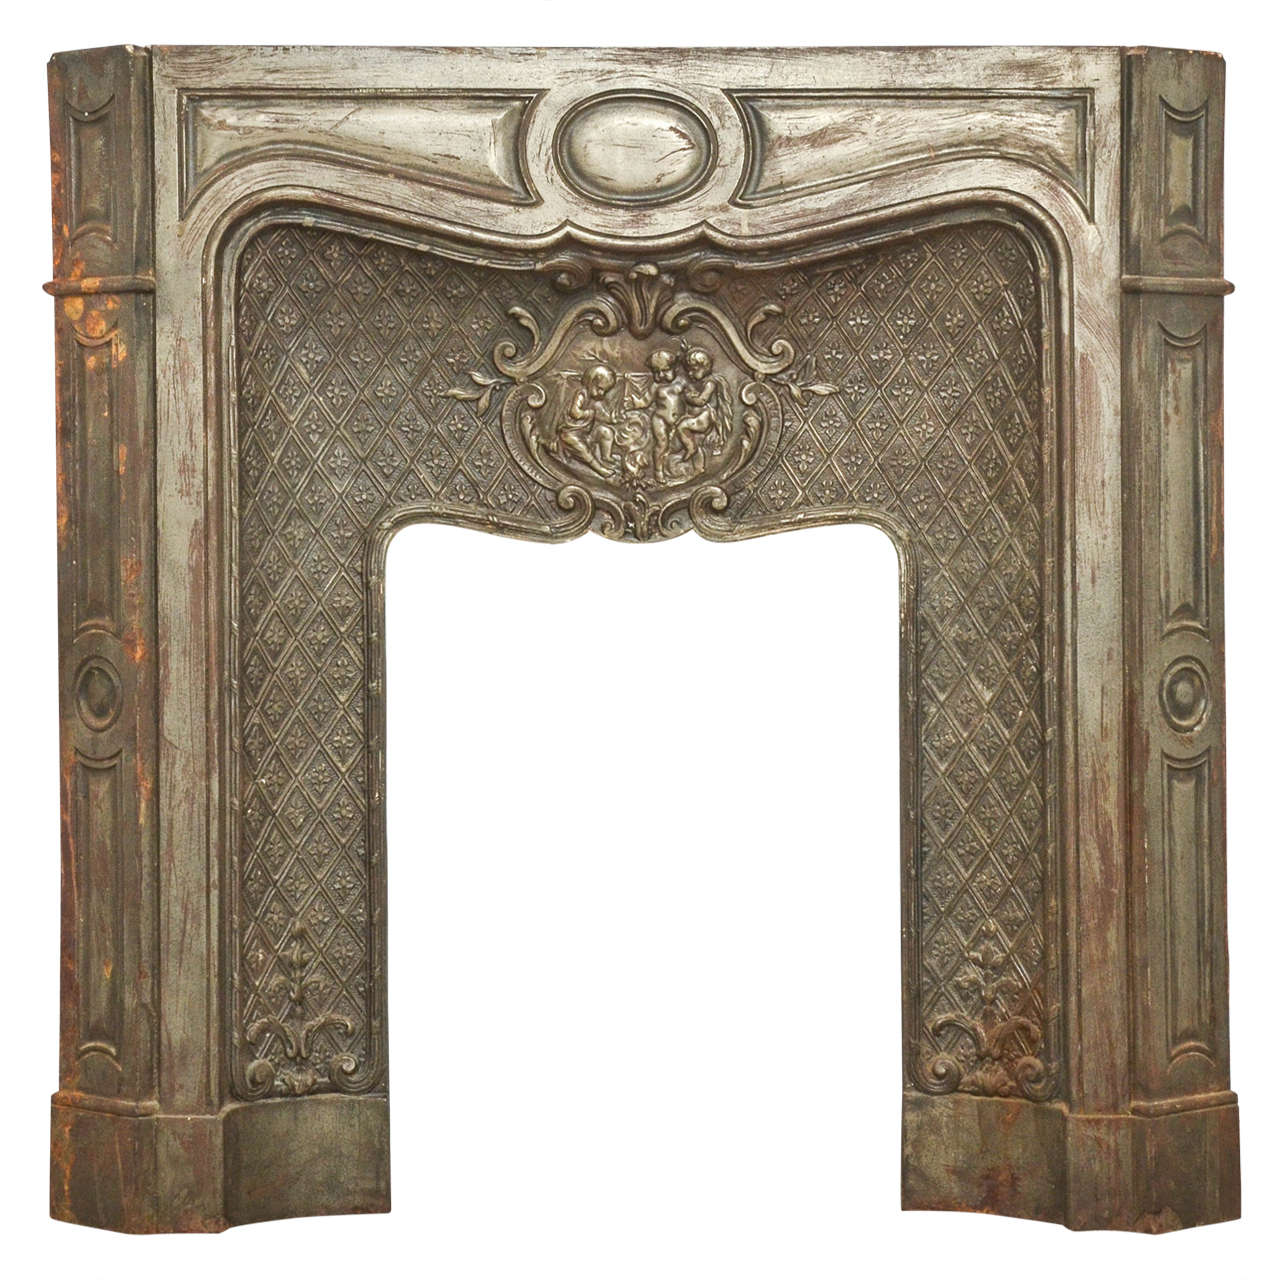 19th Century French Cast Iron Fireplace For Sale At 1stdibs